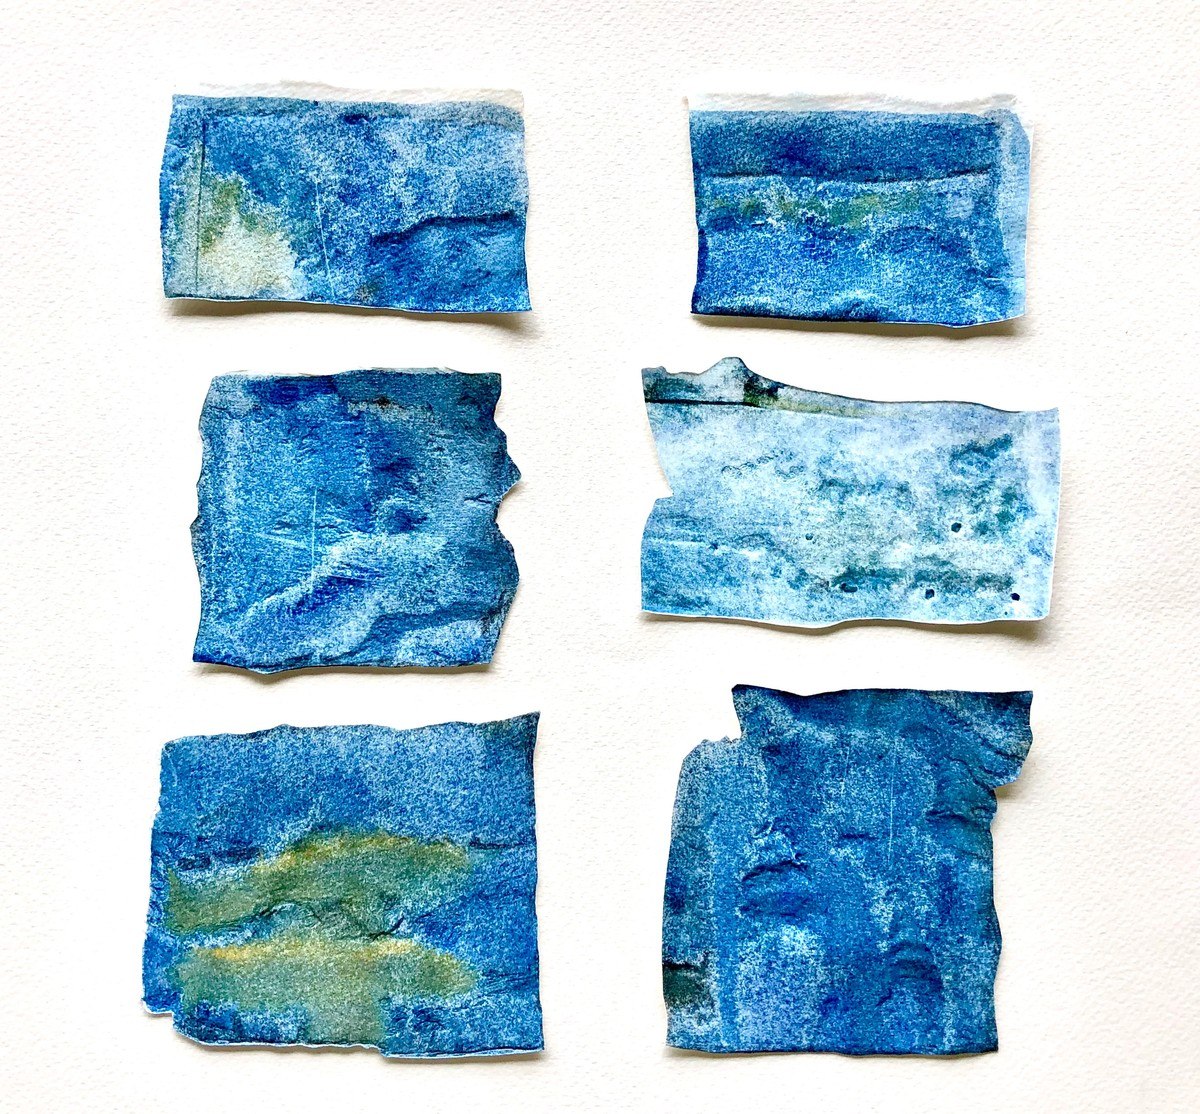 Short Stories - IV Reaching The Plateau by Wilson D'souza, Abstract Sculpture | 3D, Mixed Media on Paper, Cyan color